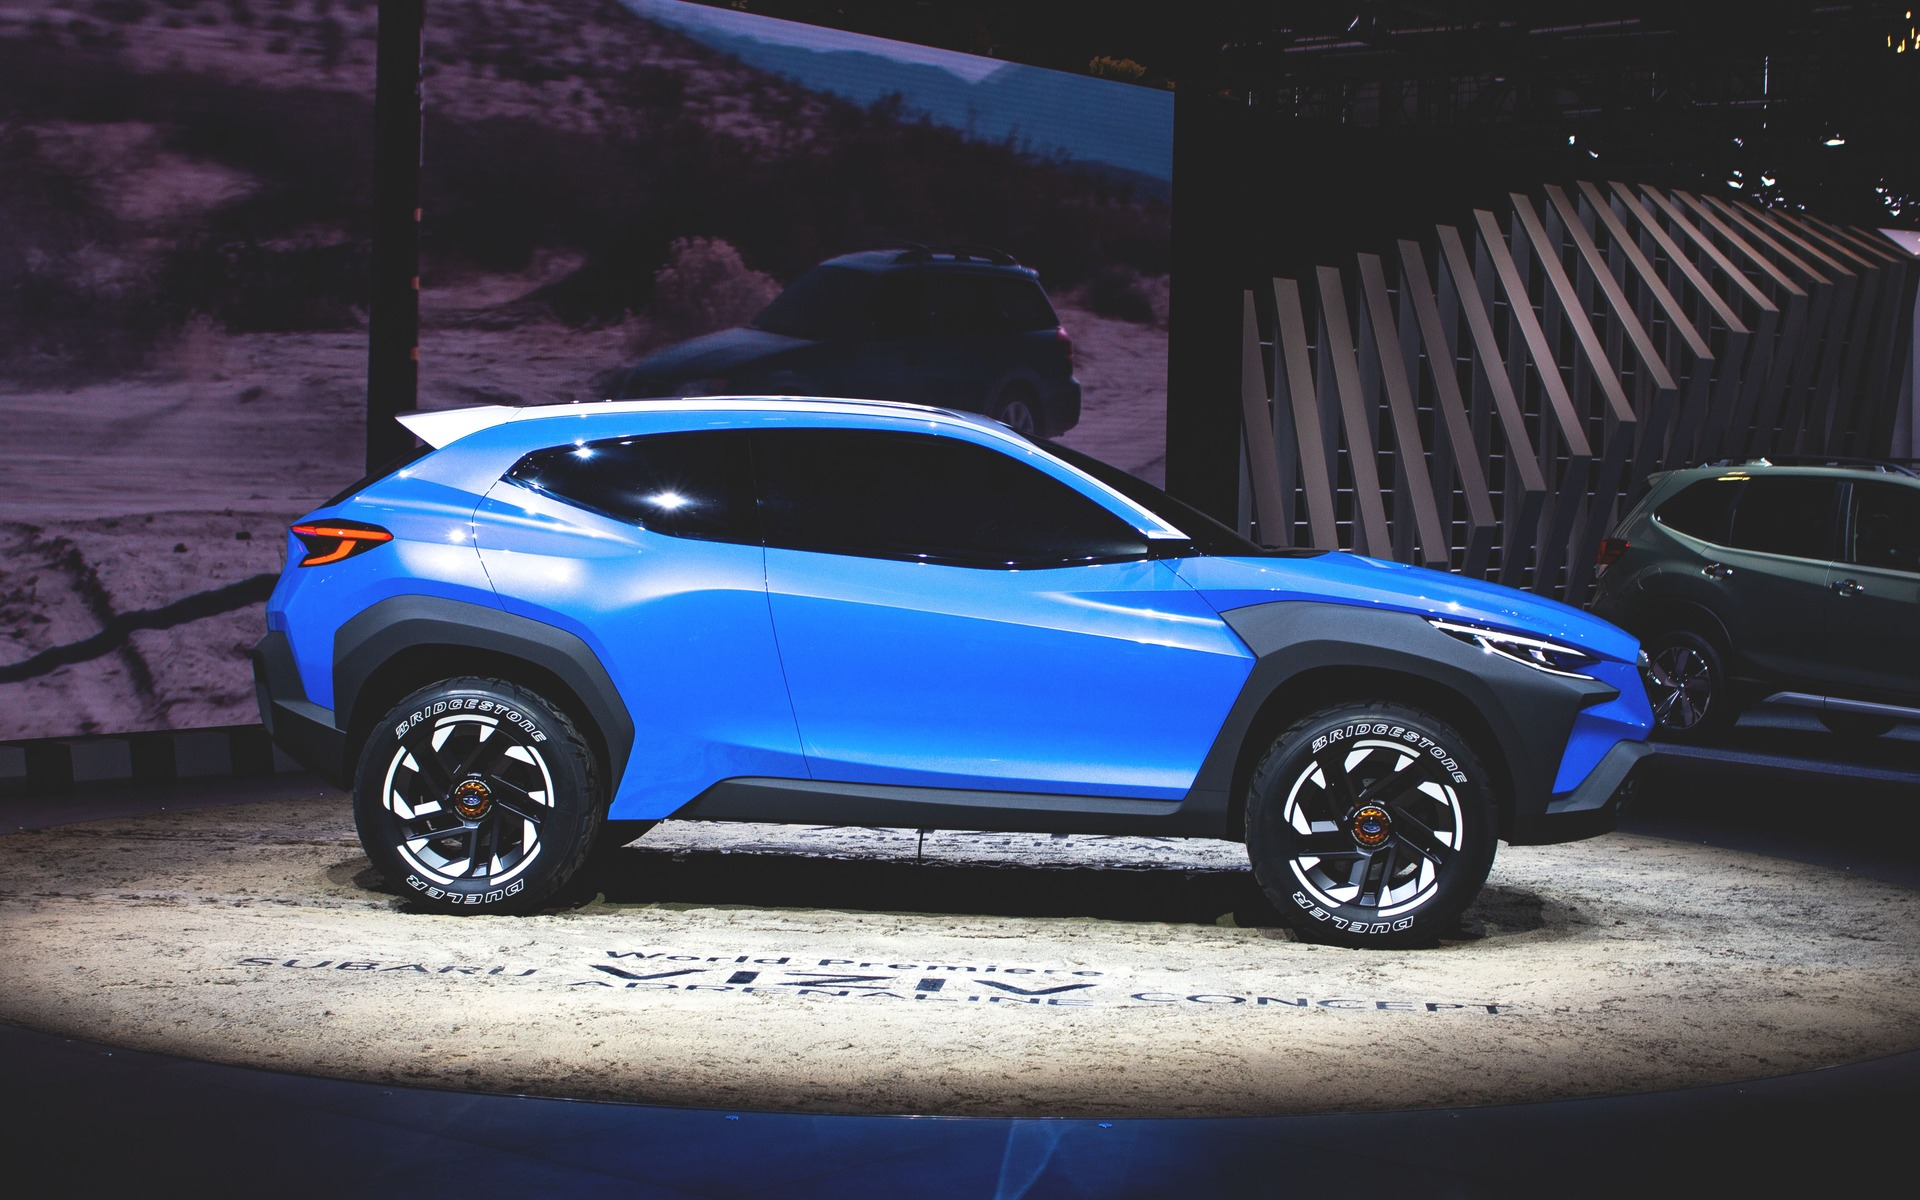 Subaru VIZIV Adrenaline Concept Takes Styling to a New Level